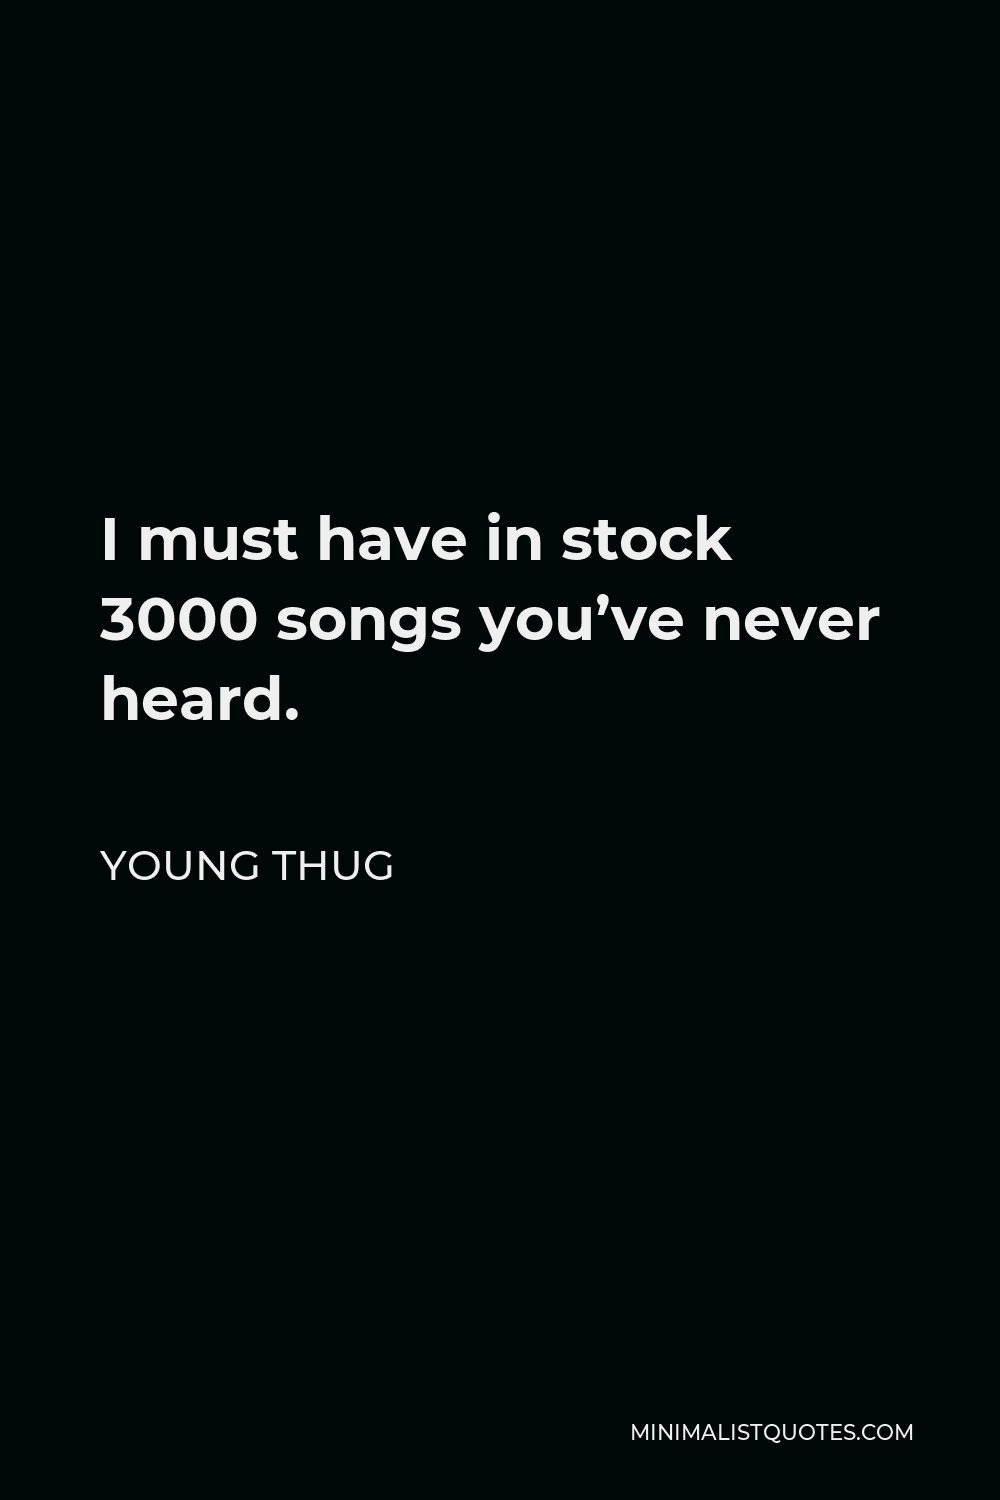 Young Thug Quote - I must have in stock 3000 songs you've never heard.